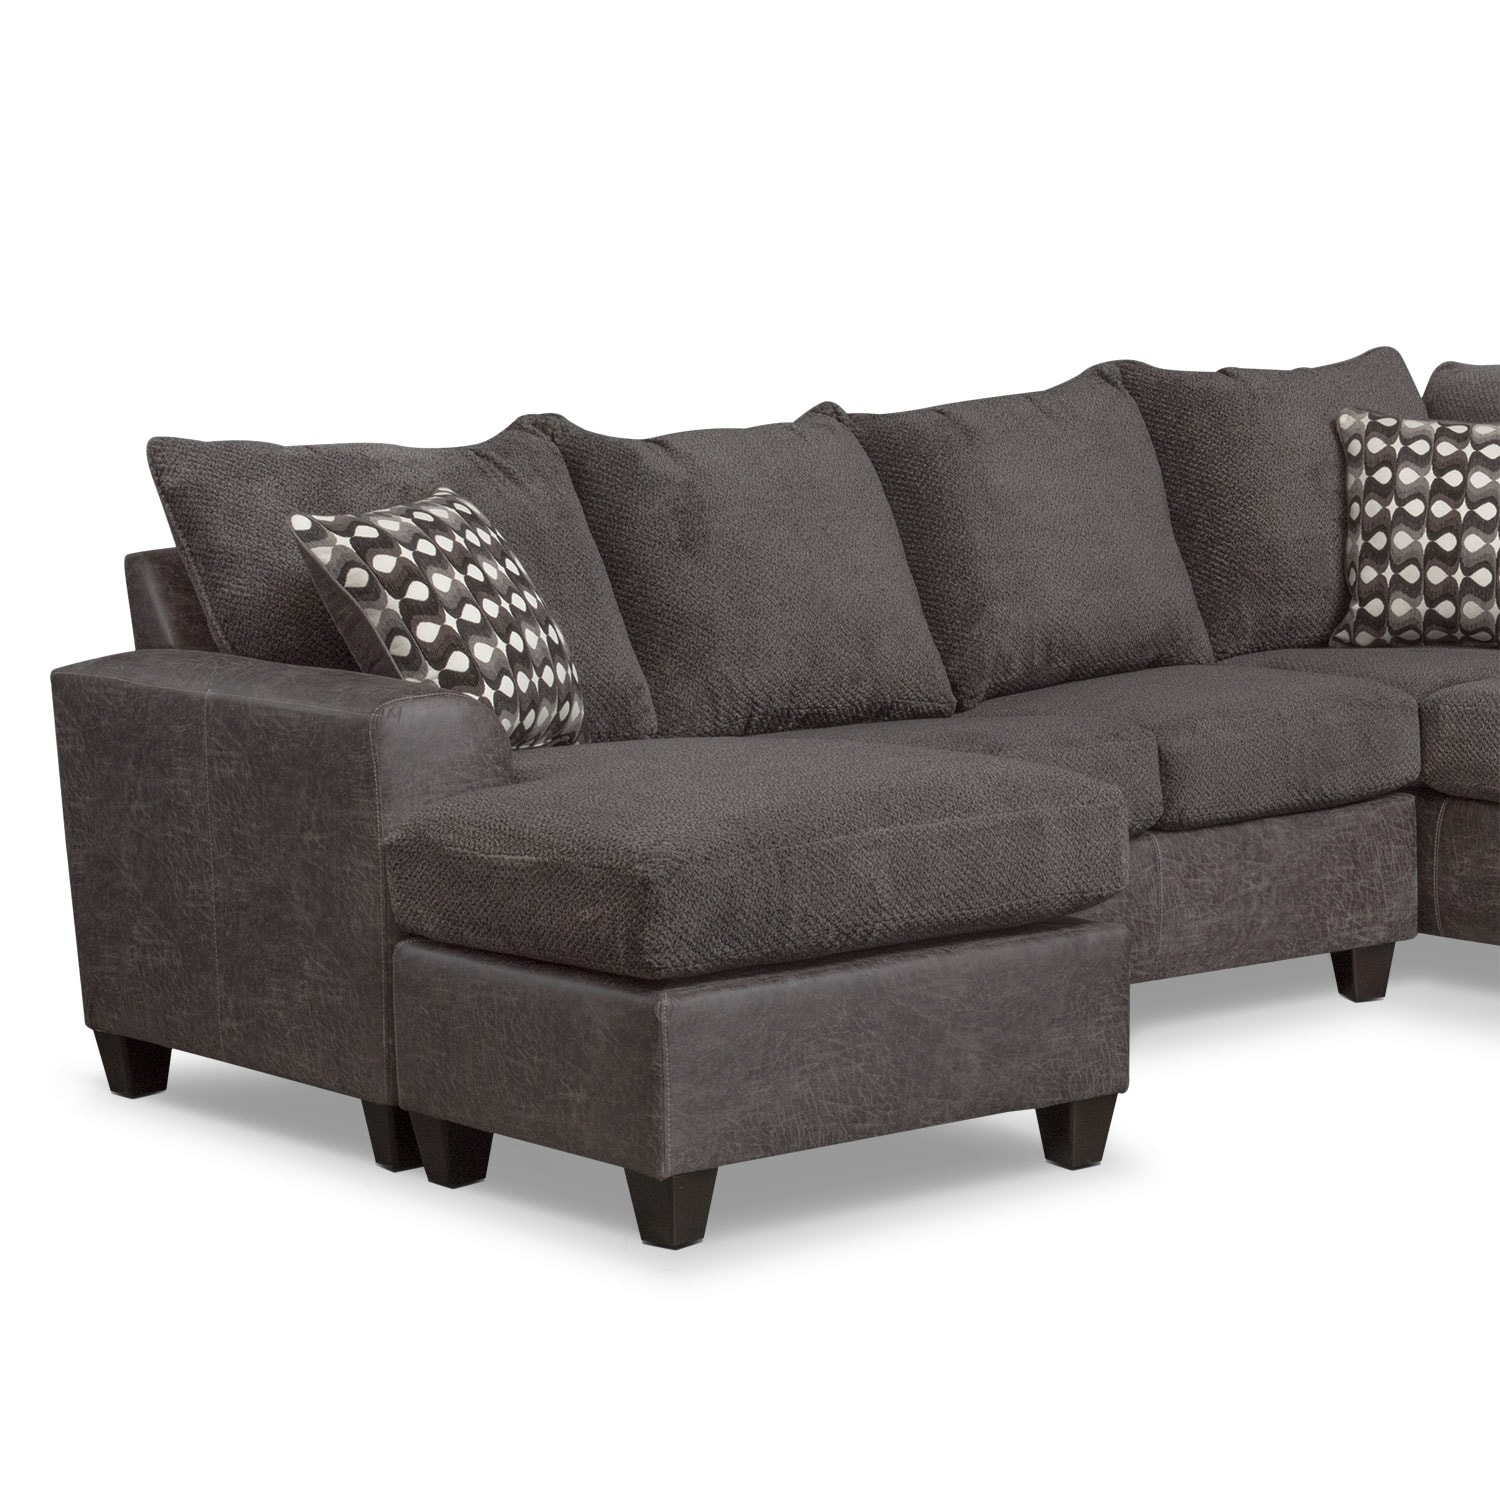 Furniture Com: Brando 3-Piece Sectional With Modular Chaise